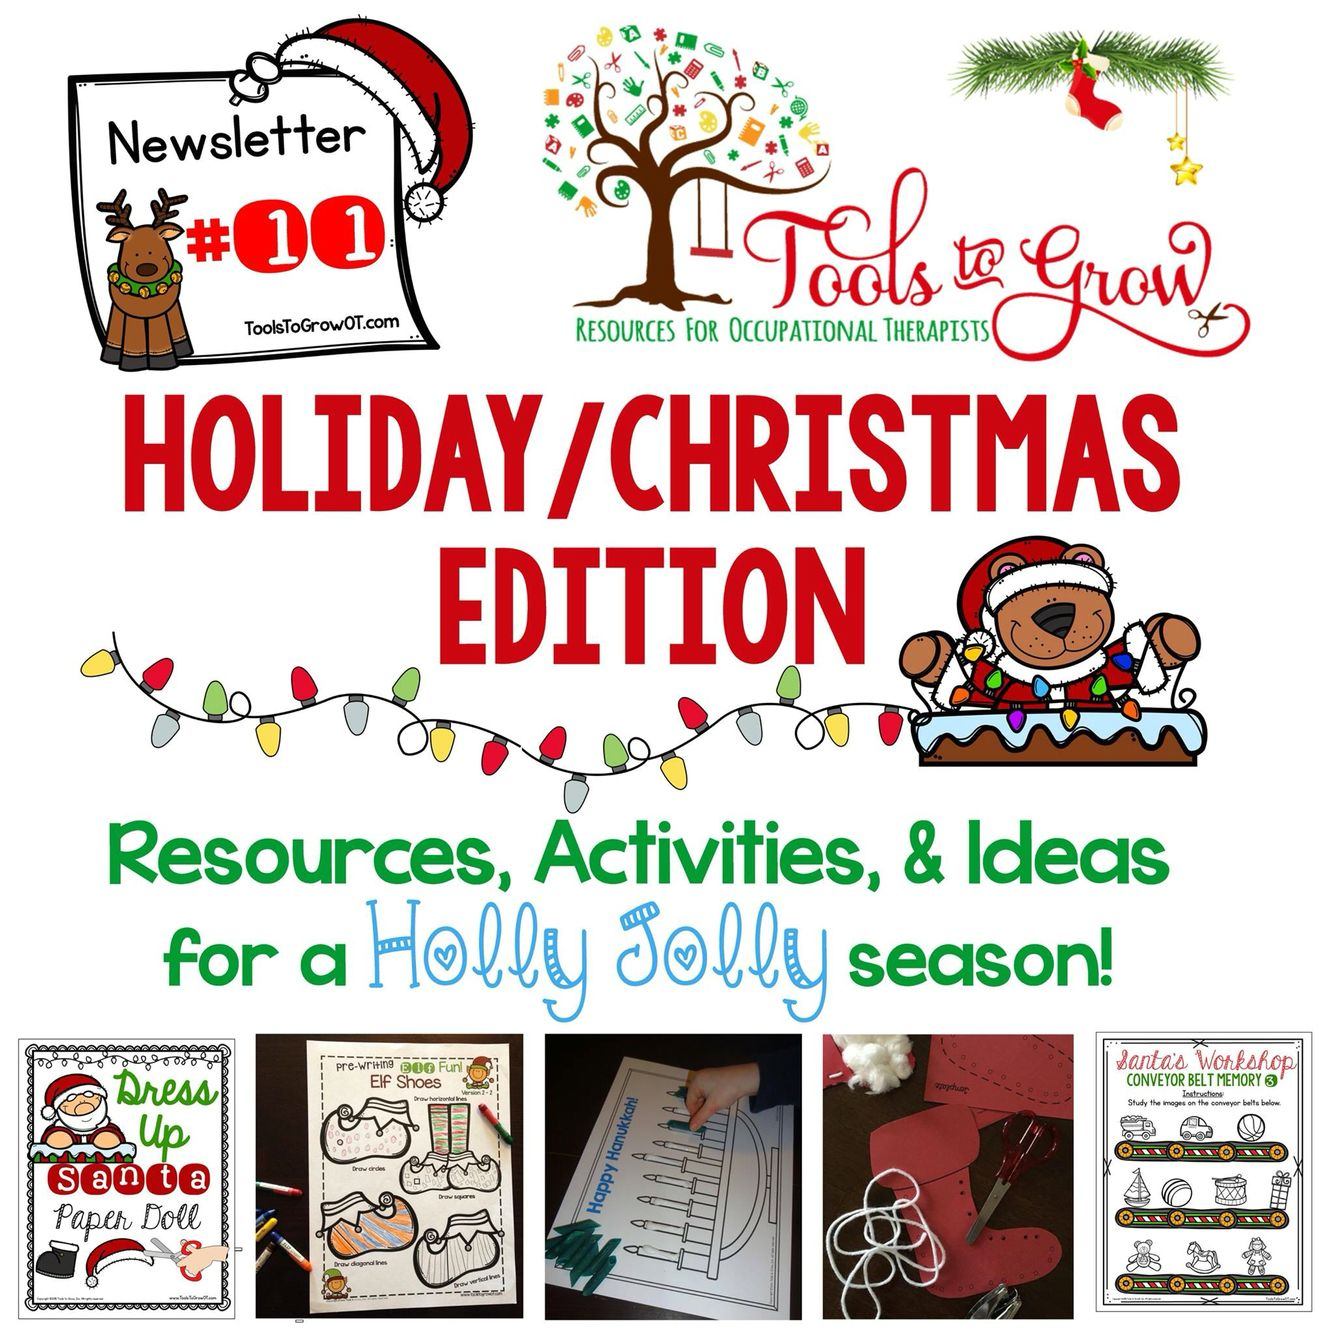 ChristmasHoliday Newsletter  Christmas Newsletter Activities